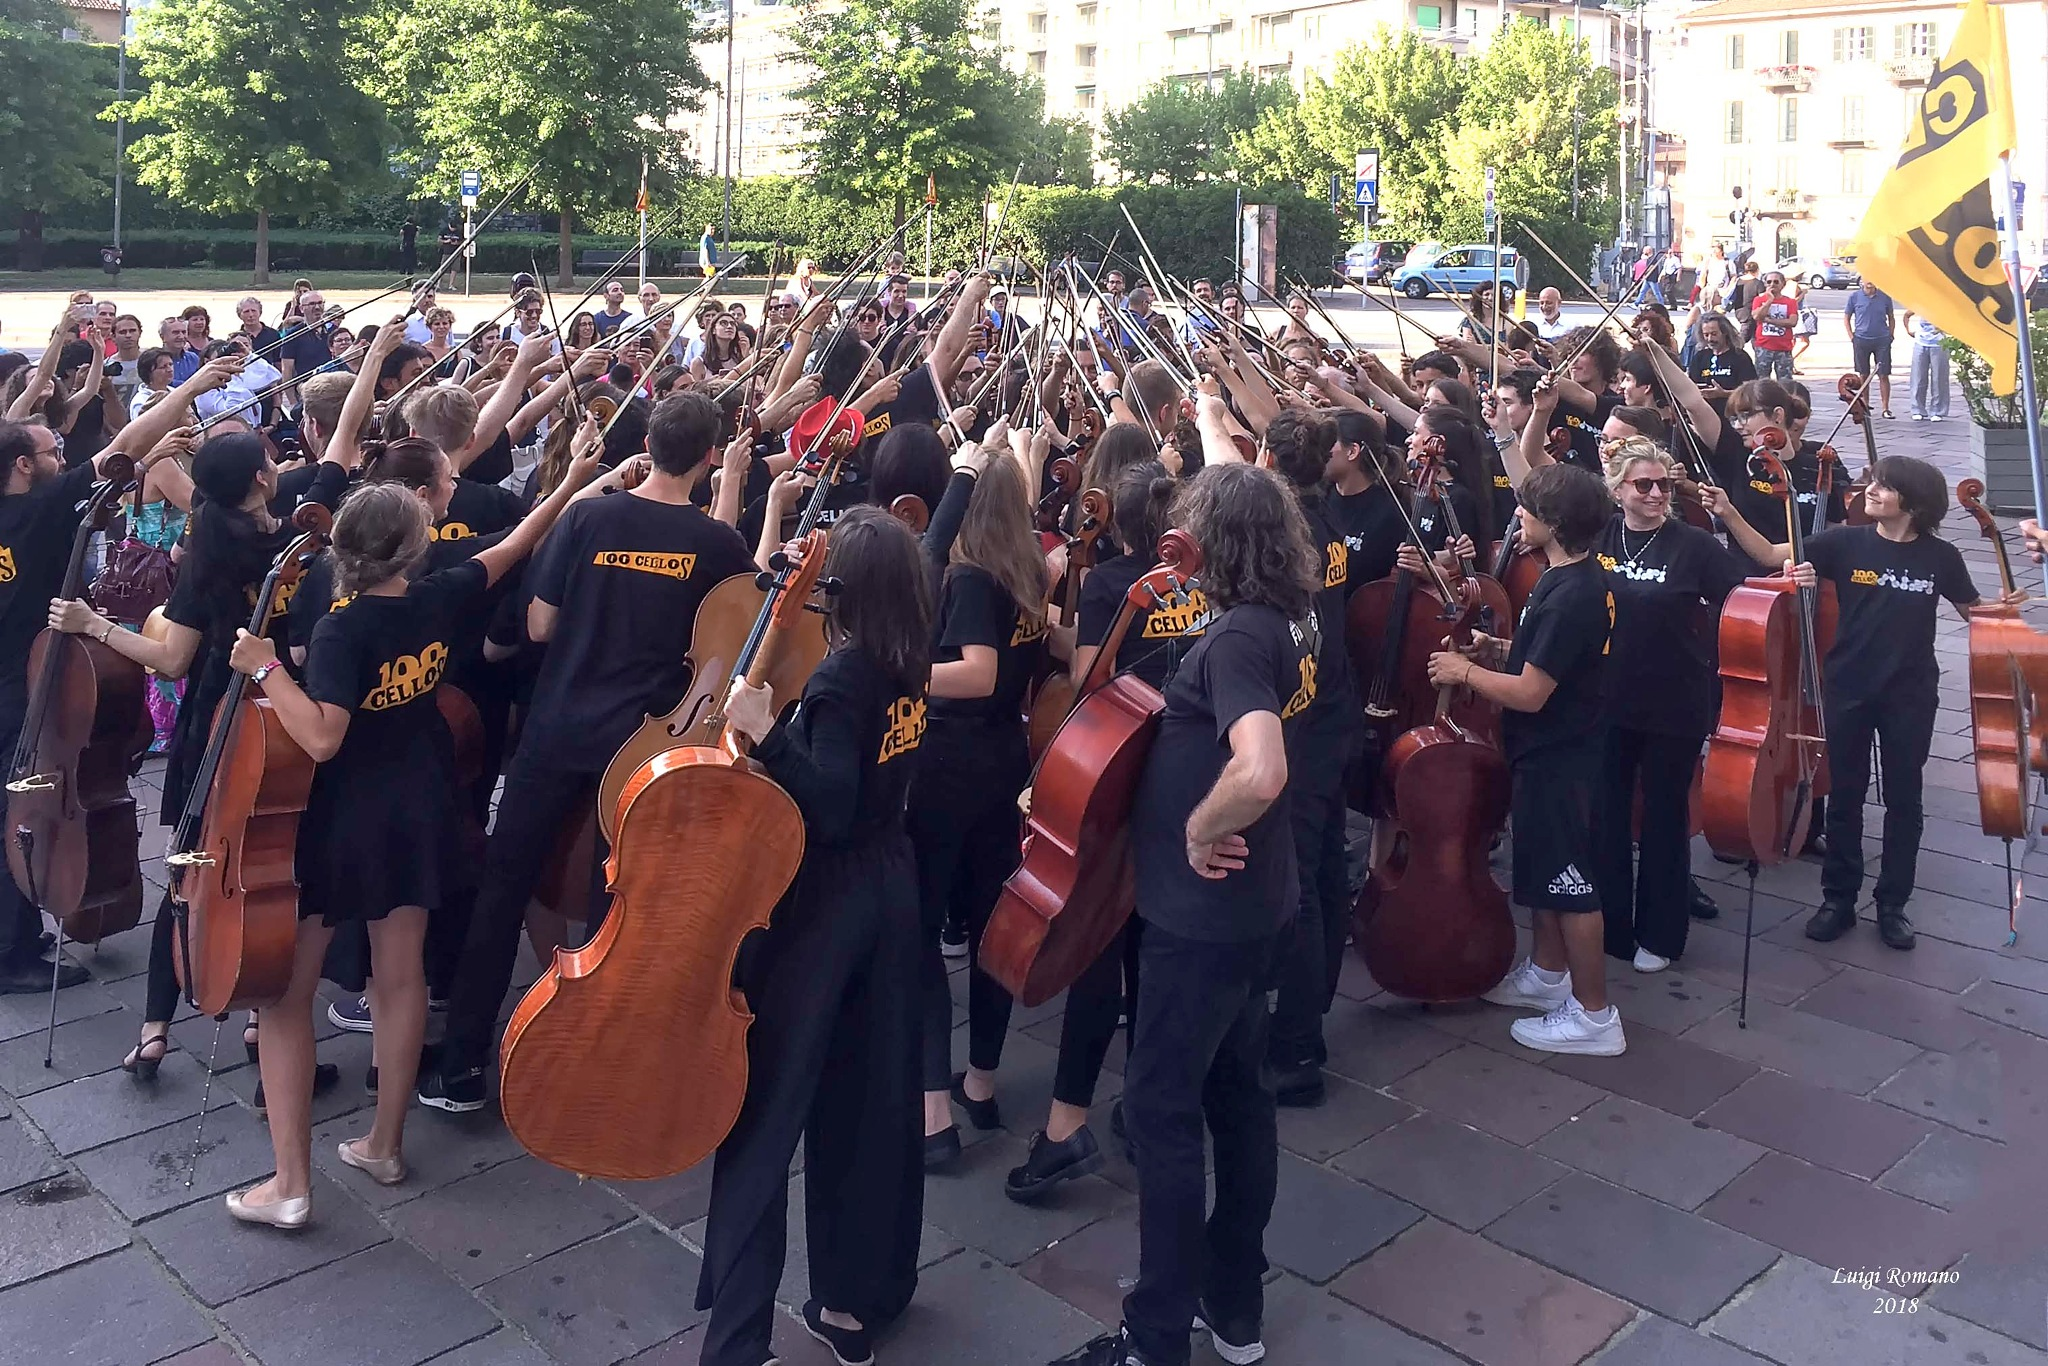 All for one - Concert for violas by Luigi Romano